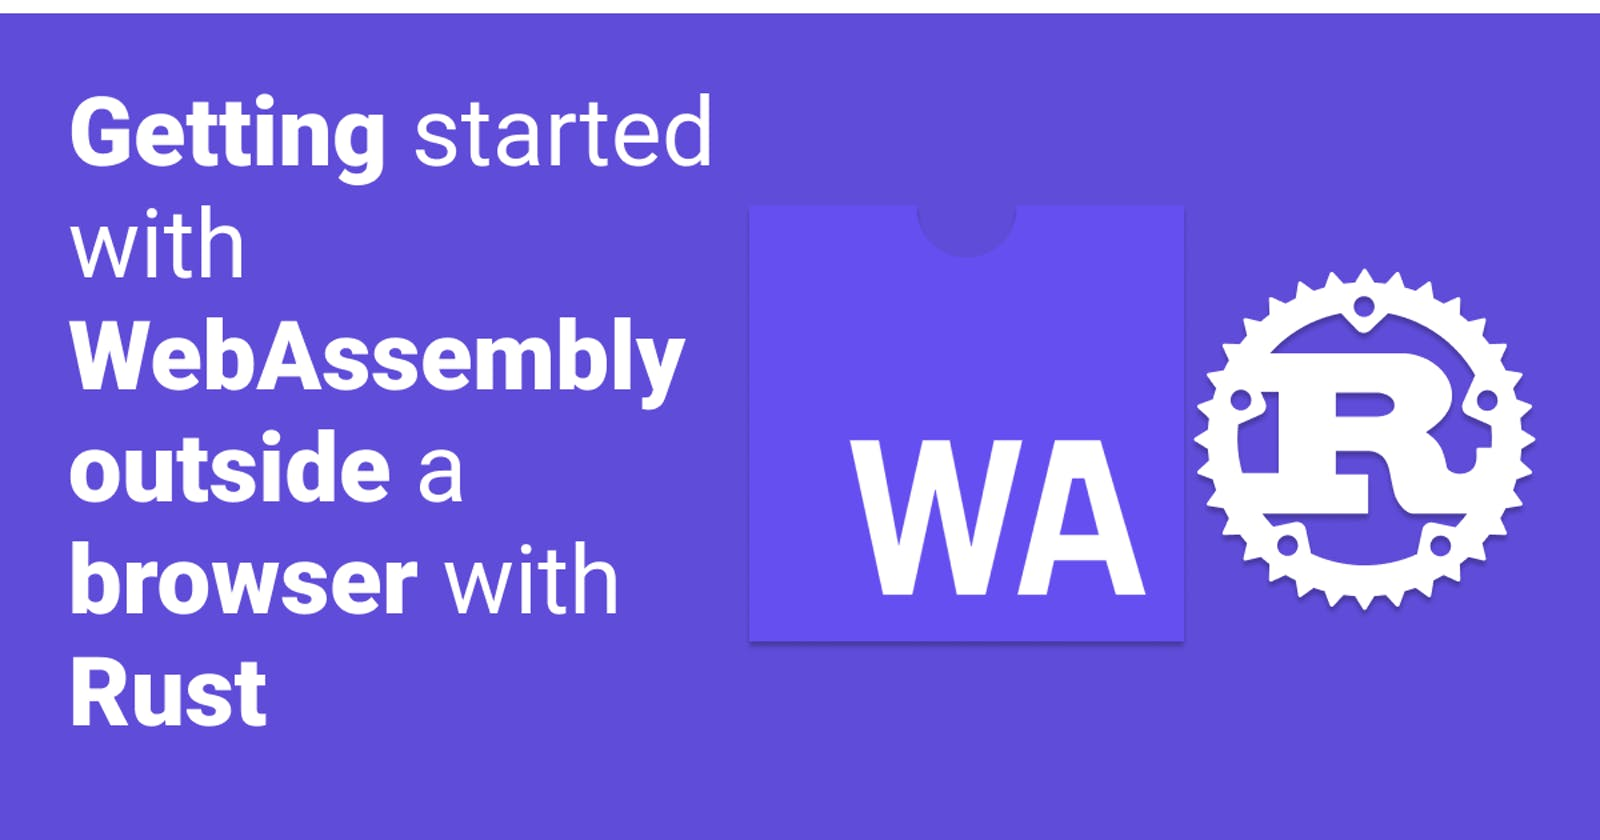 Getting started with WebAssembly outside a browser with Rust